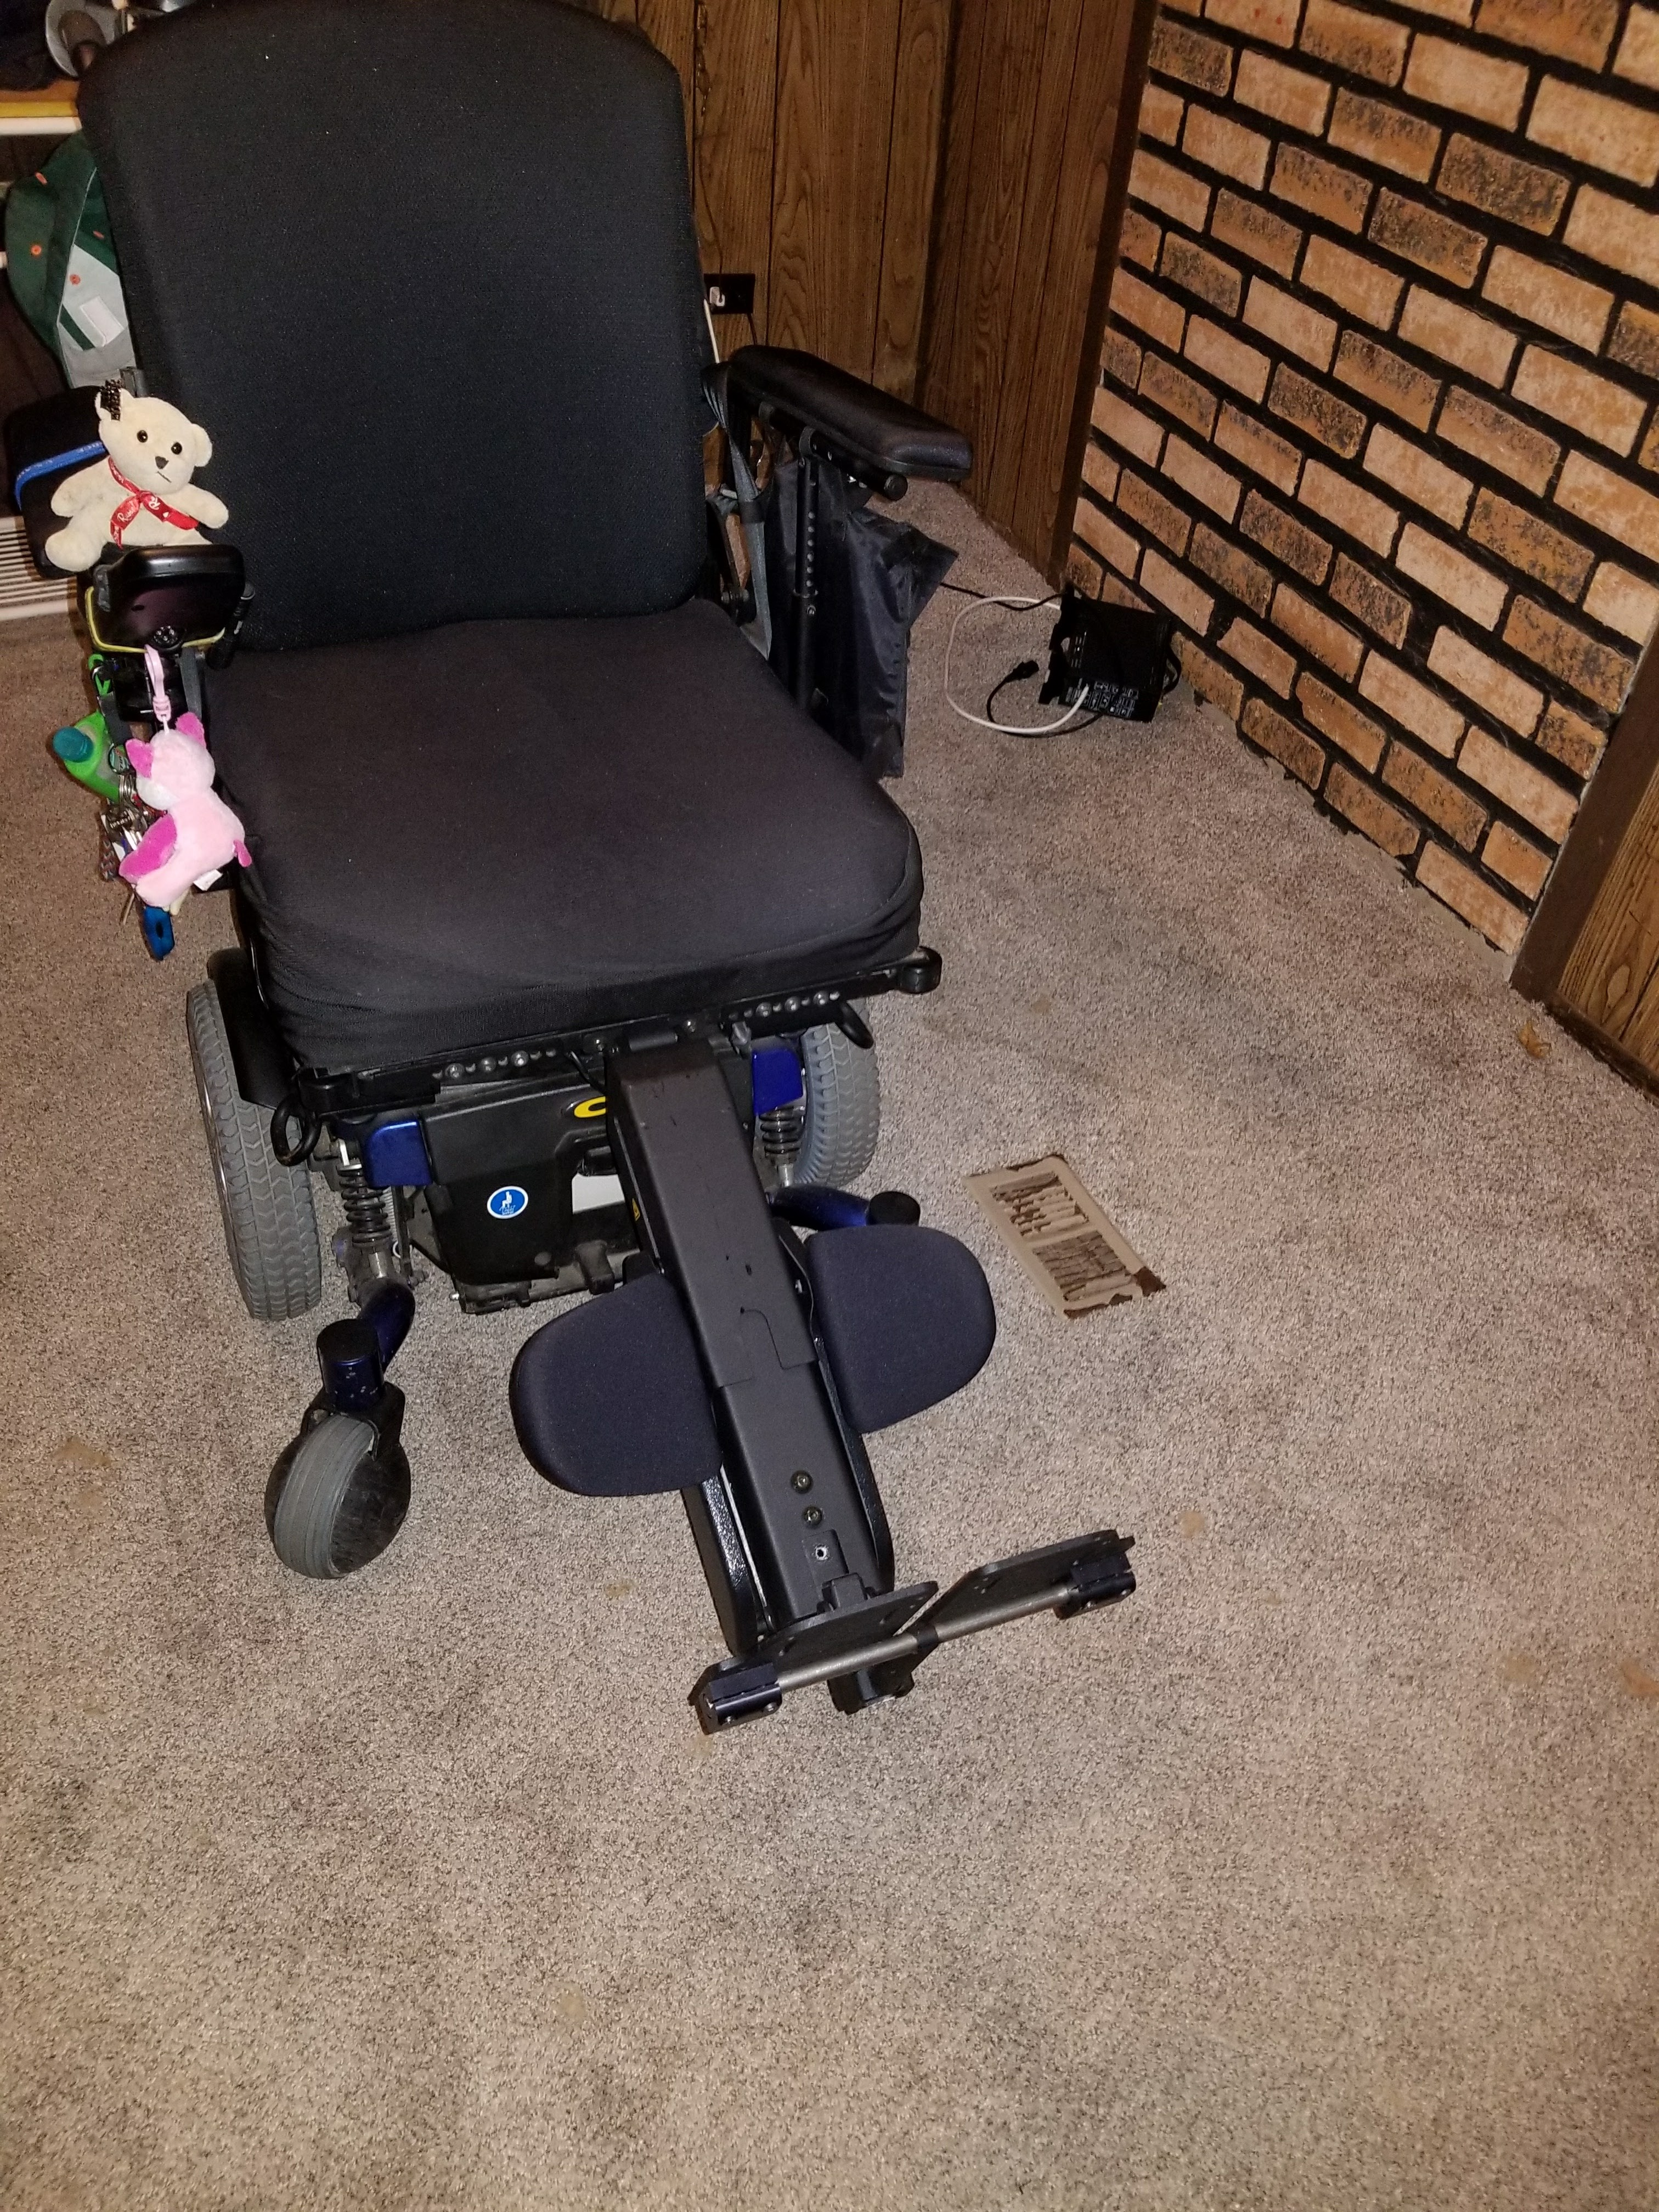 detailing 9eb7b 934c7 Quantum 6000HD power electric wheelchair - Buy   Sell Used Electric  Wheelchairs, Mobility Scooters   More!